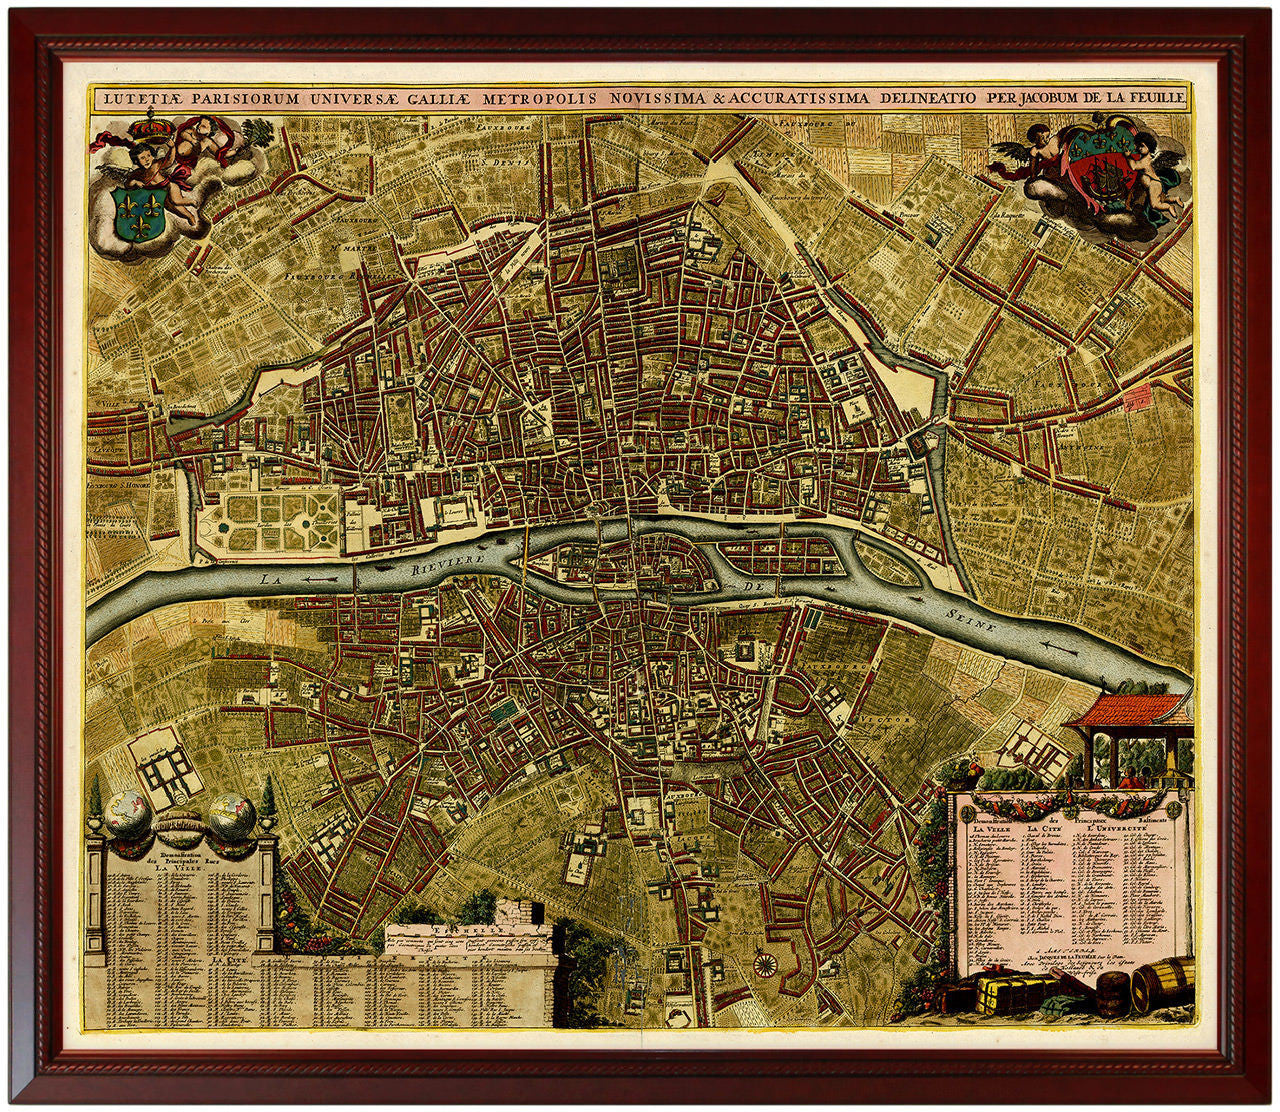 Paris 1690 Lutetiae Parisiorum Framed City Plan Battlemapsus